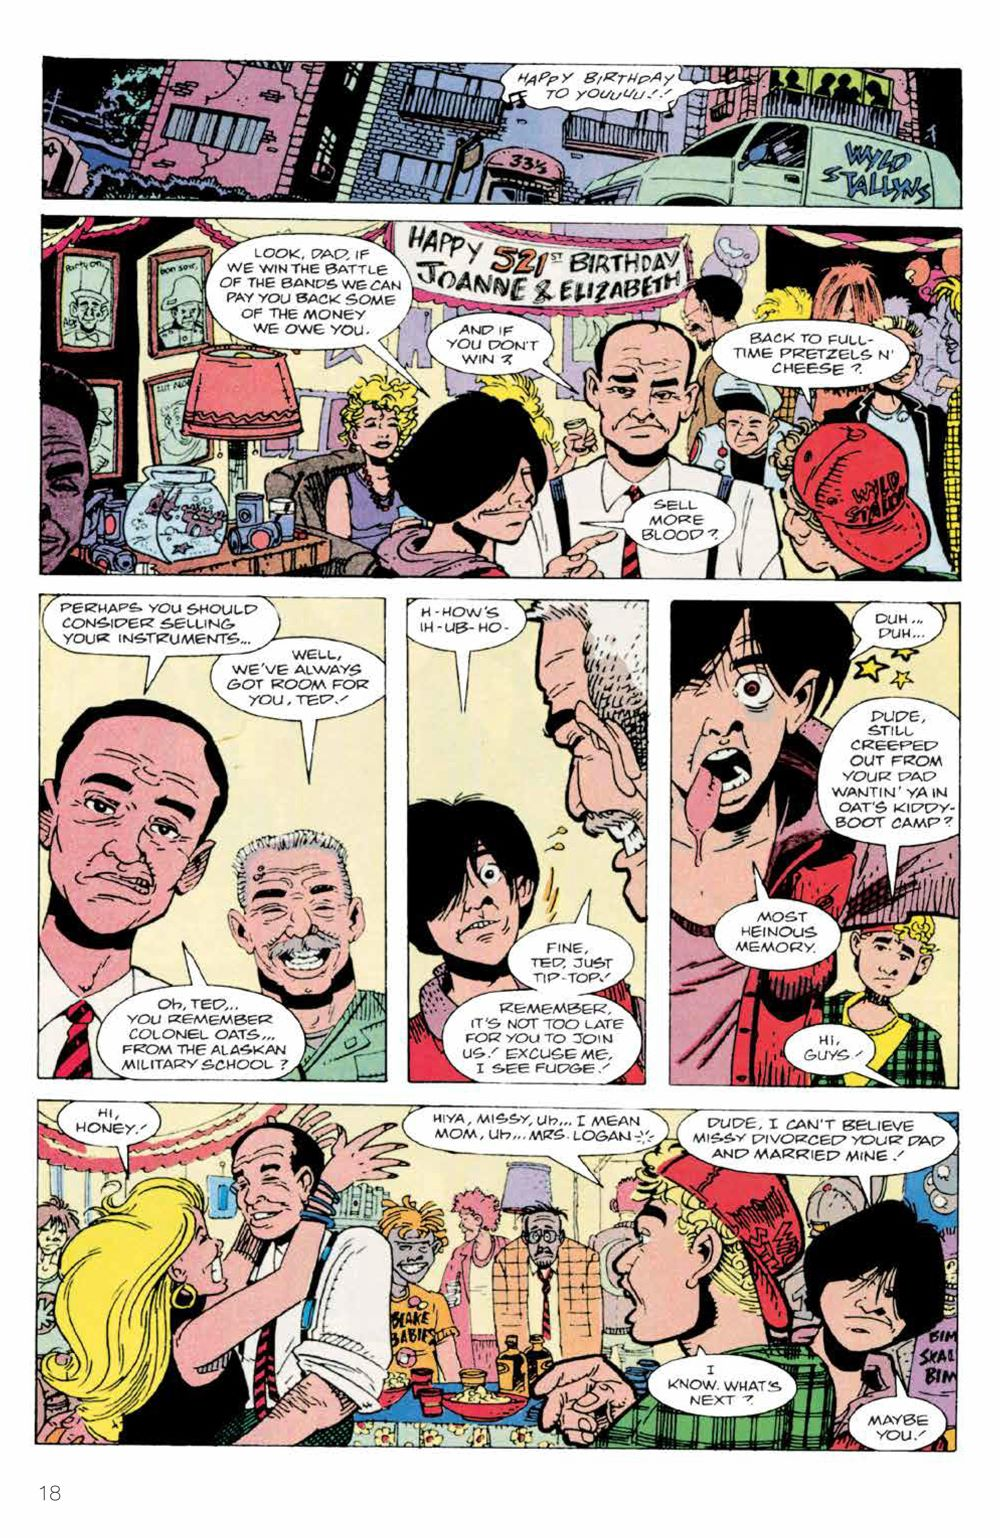 BillTed_Archive_SC_PRESS_20-1 ComicList Previews: BILL AND TED'S EXCELLENT COMIC BOOK ARCHIVE TP